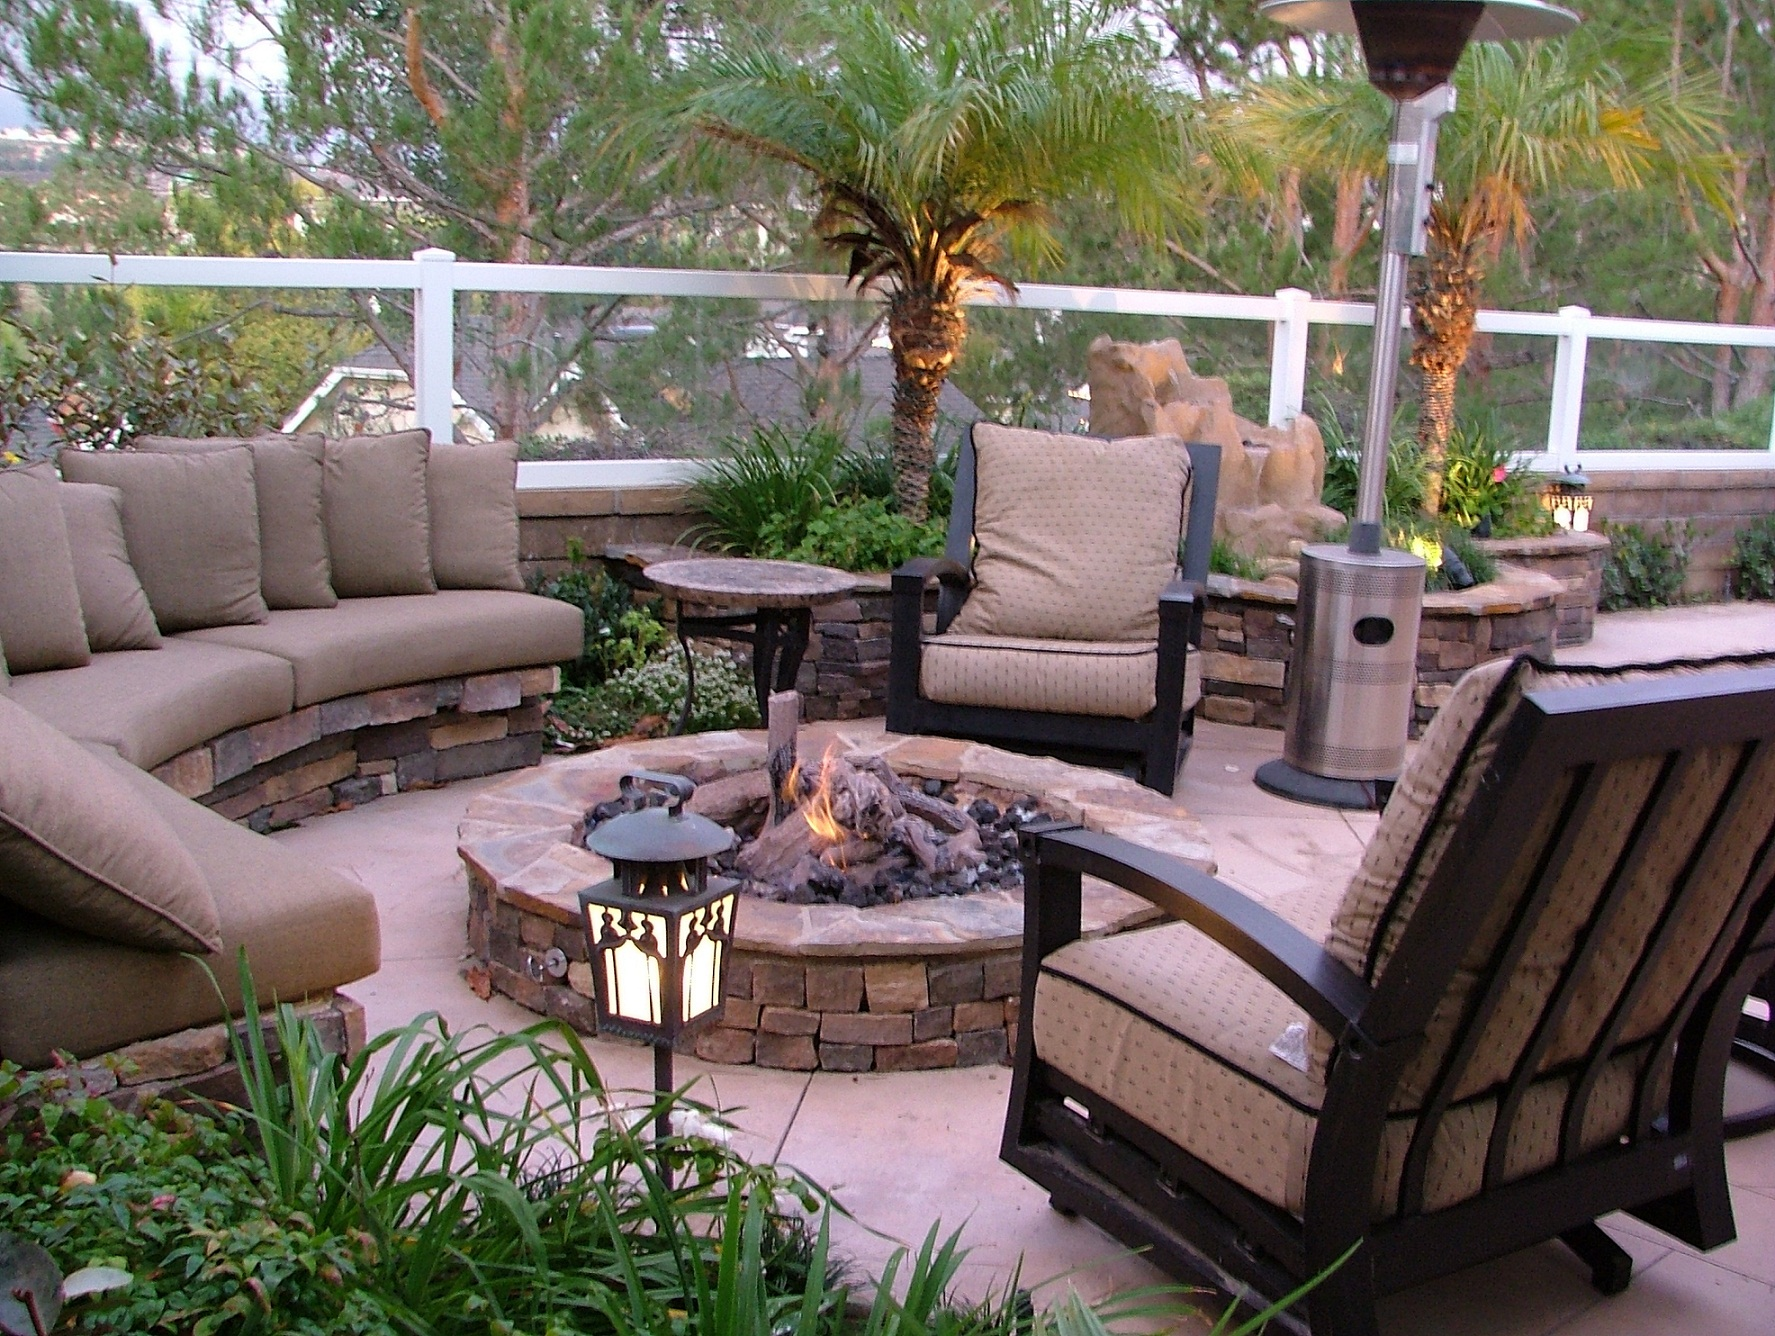 Wonderful Diy Patio Ideas On A Budget Garden Design With Cheap Diy Patio Ideas For  Bbq Party